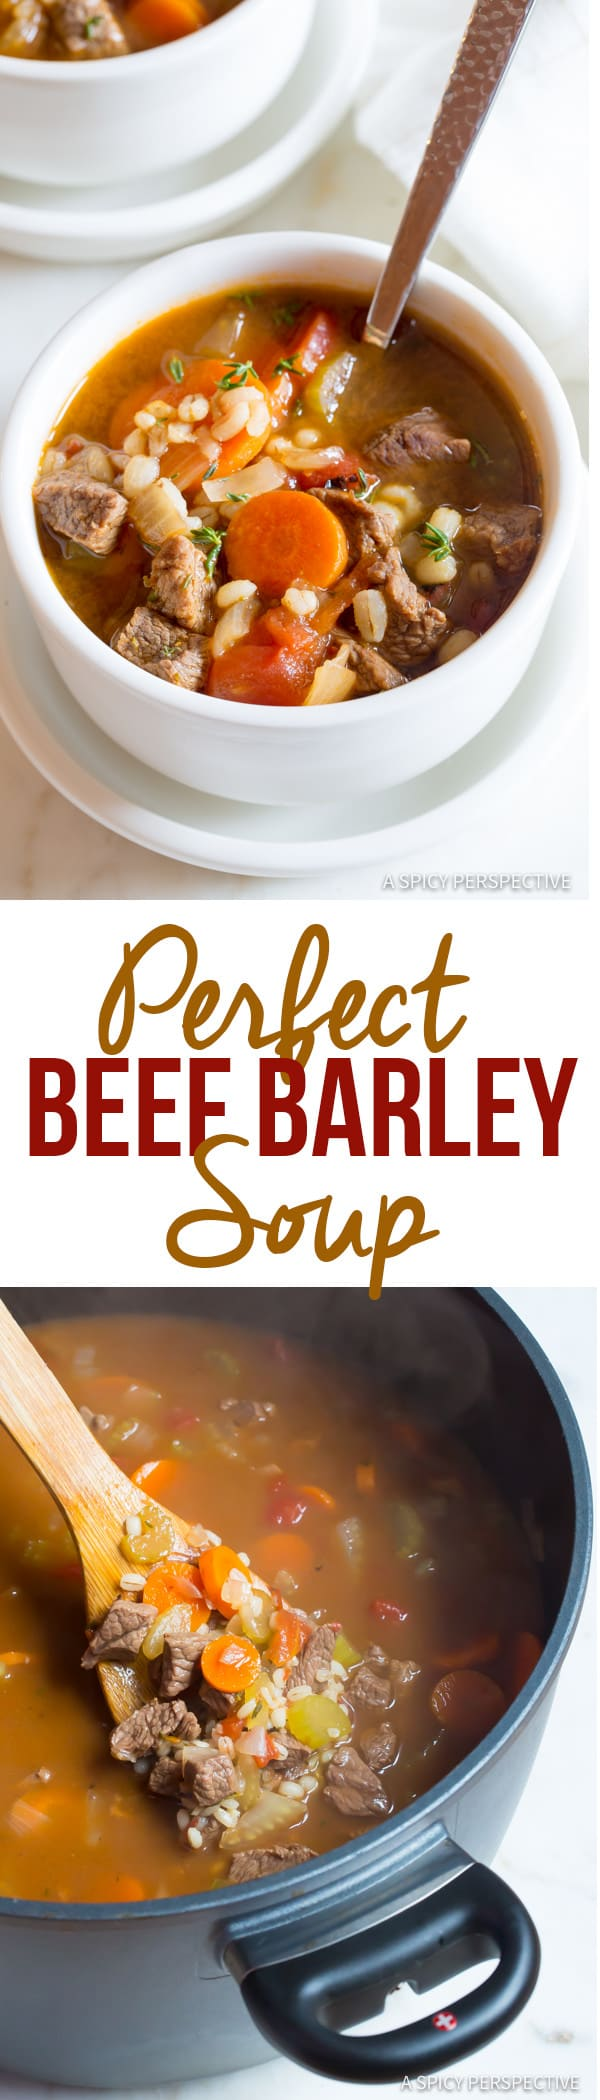 The Perfect Beef Barley Soup Recipe | ASpicyPerspective.com